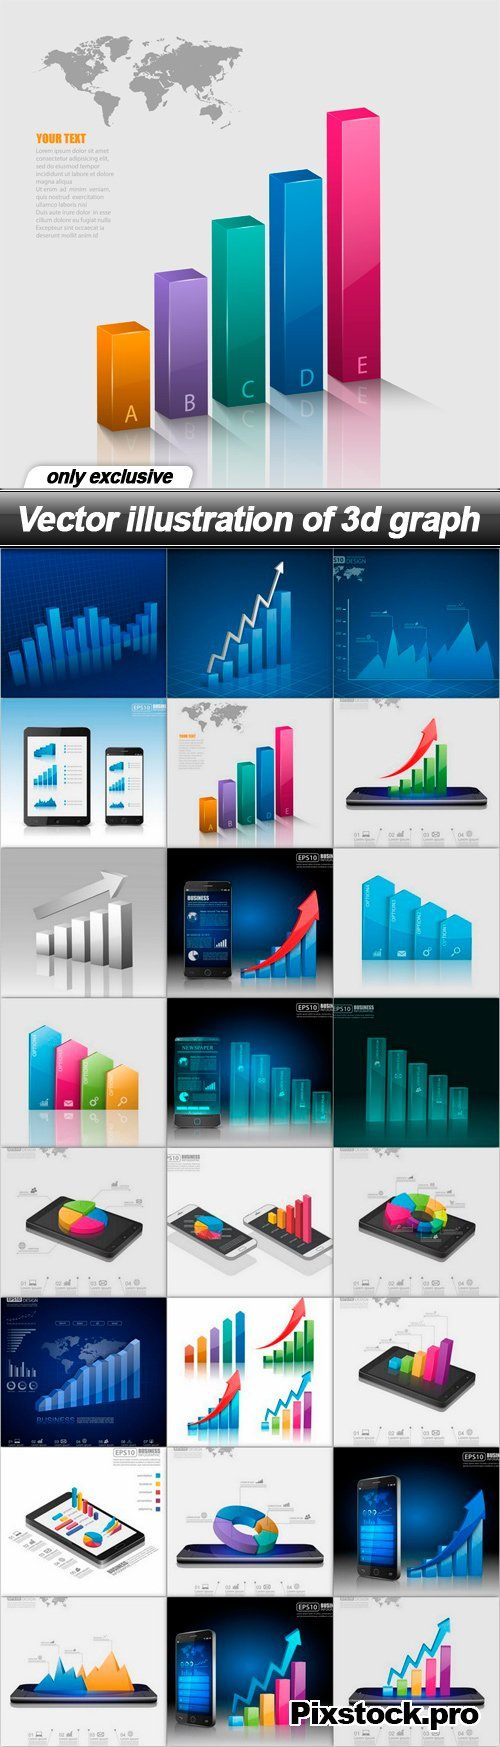 Vector illustration of 3d graph – 24 EPS